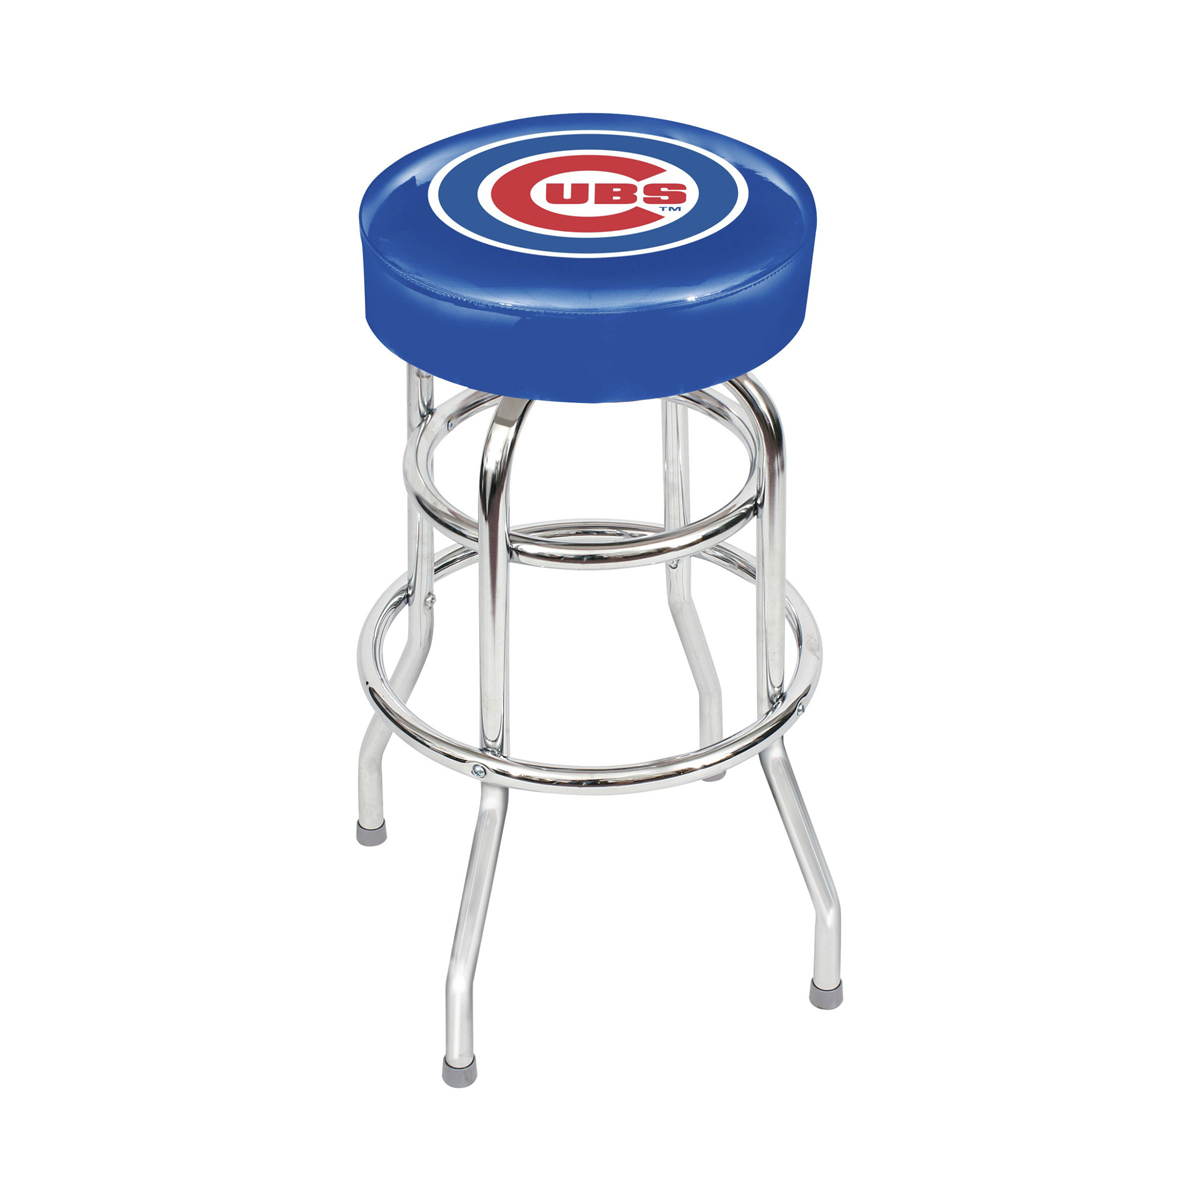 directors chair bar stool folding jysk 8' mlb chicago cubs team logo pool table - gametablesonline.com